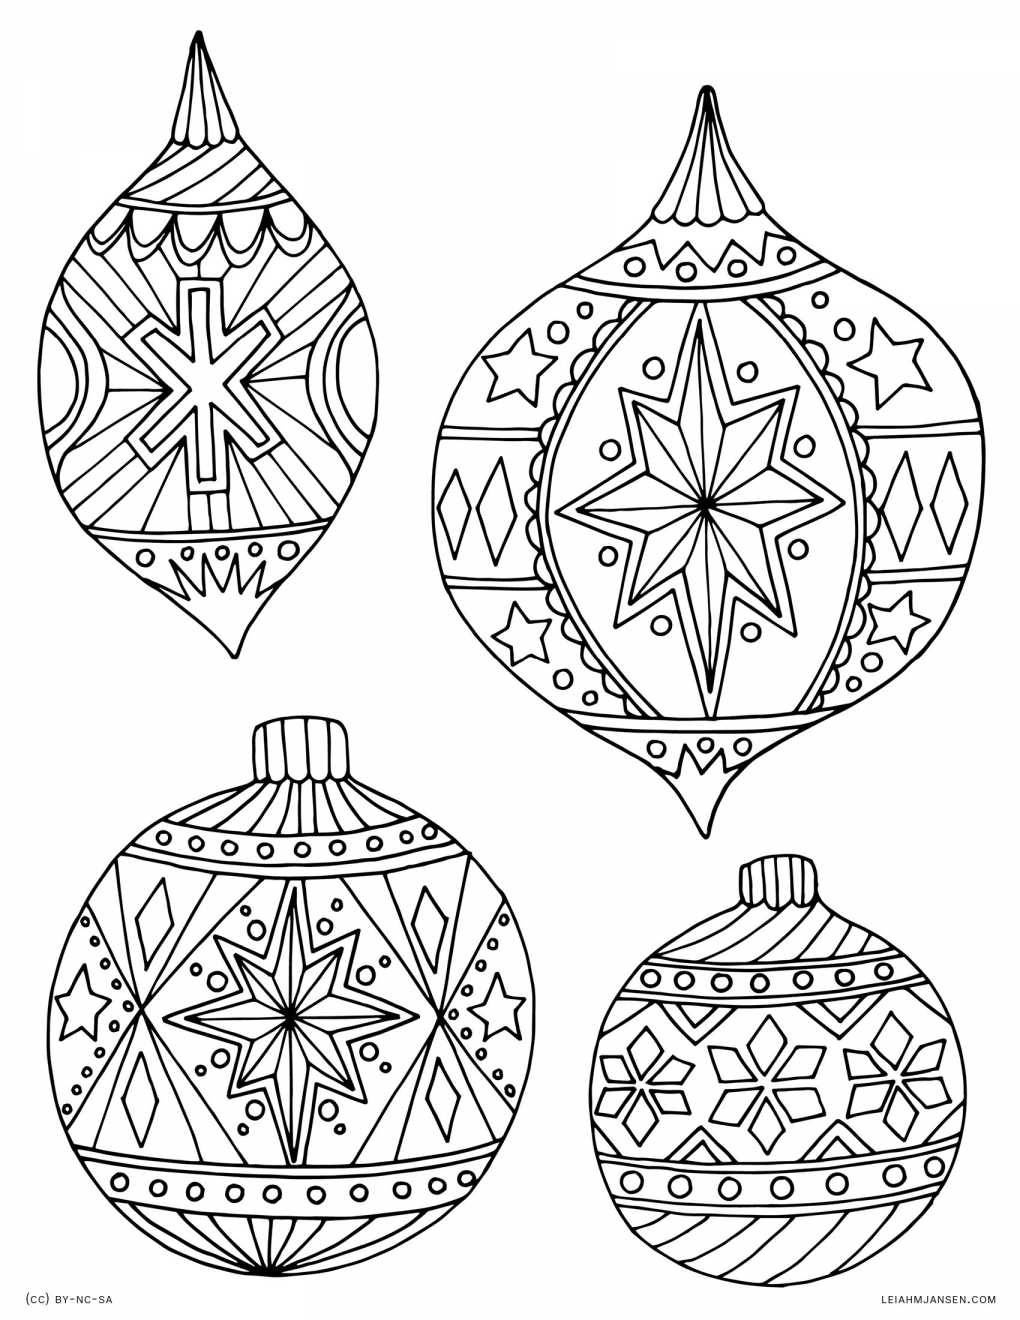 30 Cheerful Printable Christmas Ornaments | Kittybabylove - Free Printable Christmas Ornament Patterns